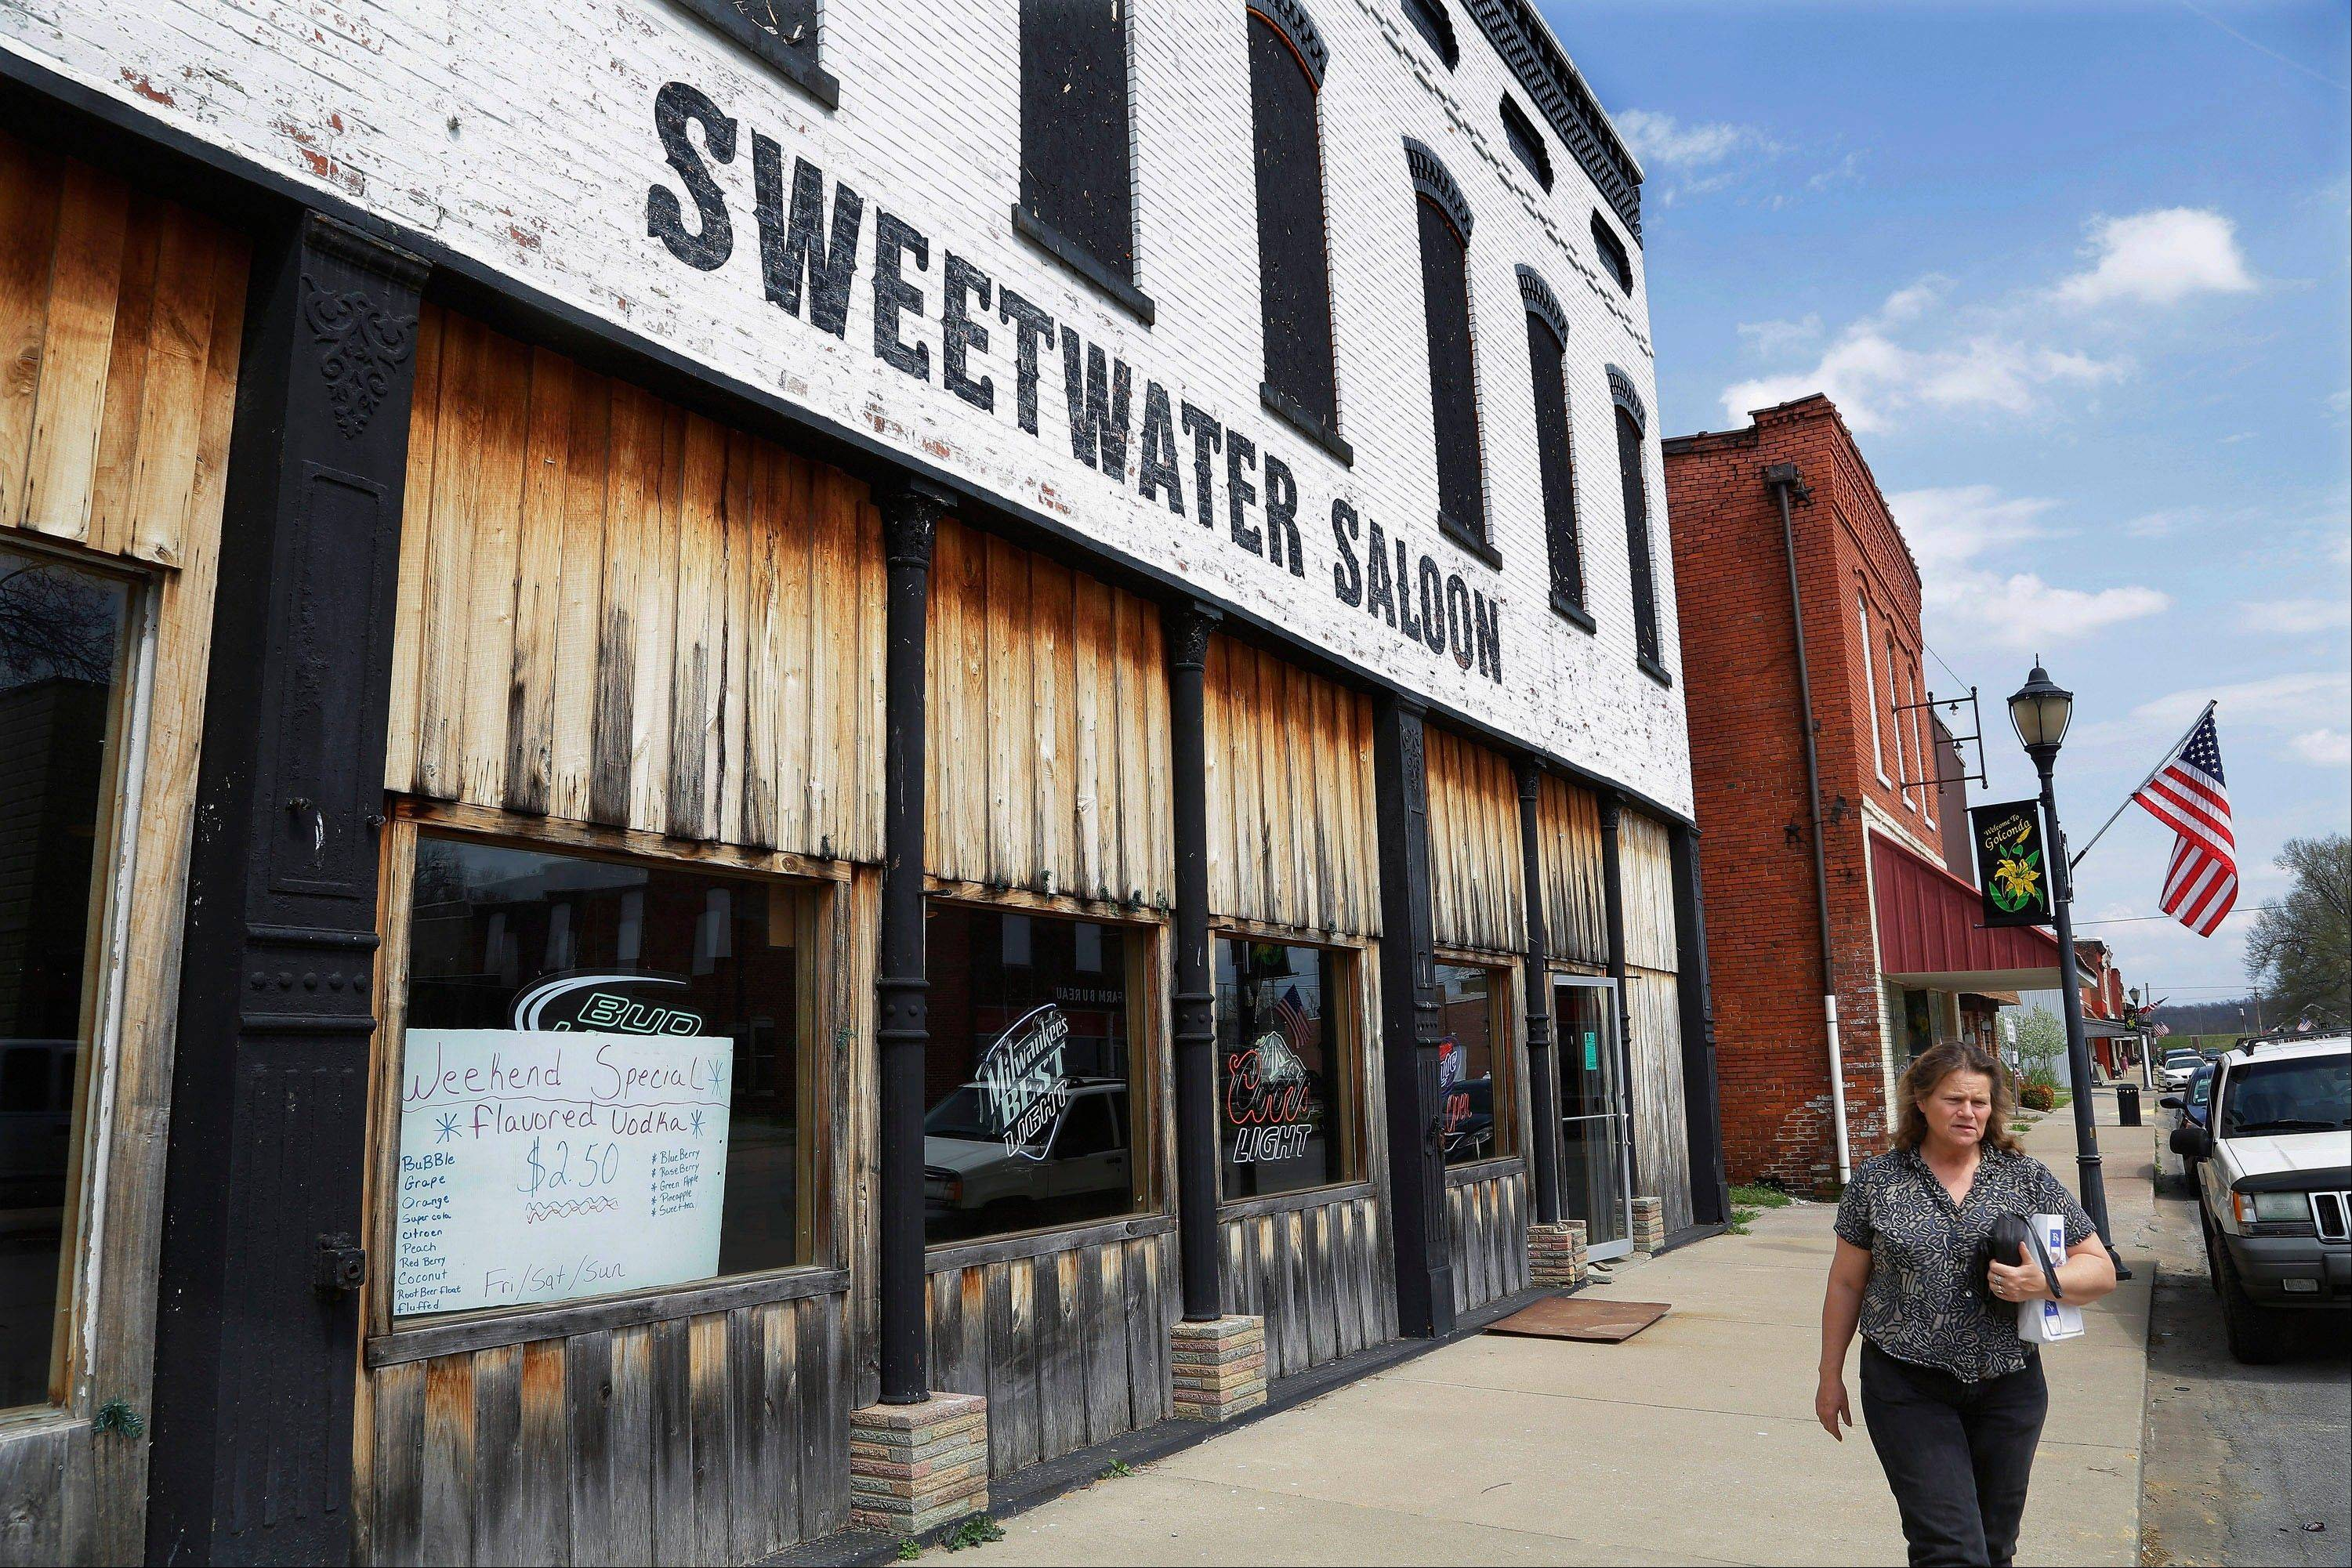 The Sweetwater Saloon dominates main street, taking up most of the block in Golconda, Ill. John Towns, owner of the Sweetwater Saloon says oil drilling would not bother him a bit. Southern Illinoisans have hopes and fears surrounding the high-volume oil and gas drilling that may be starting in the Shawnee National Forest.